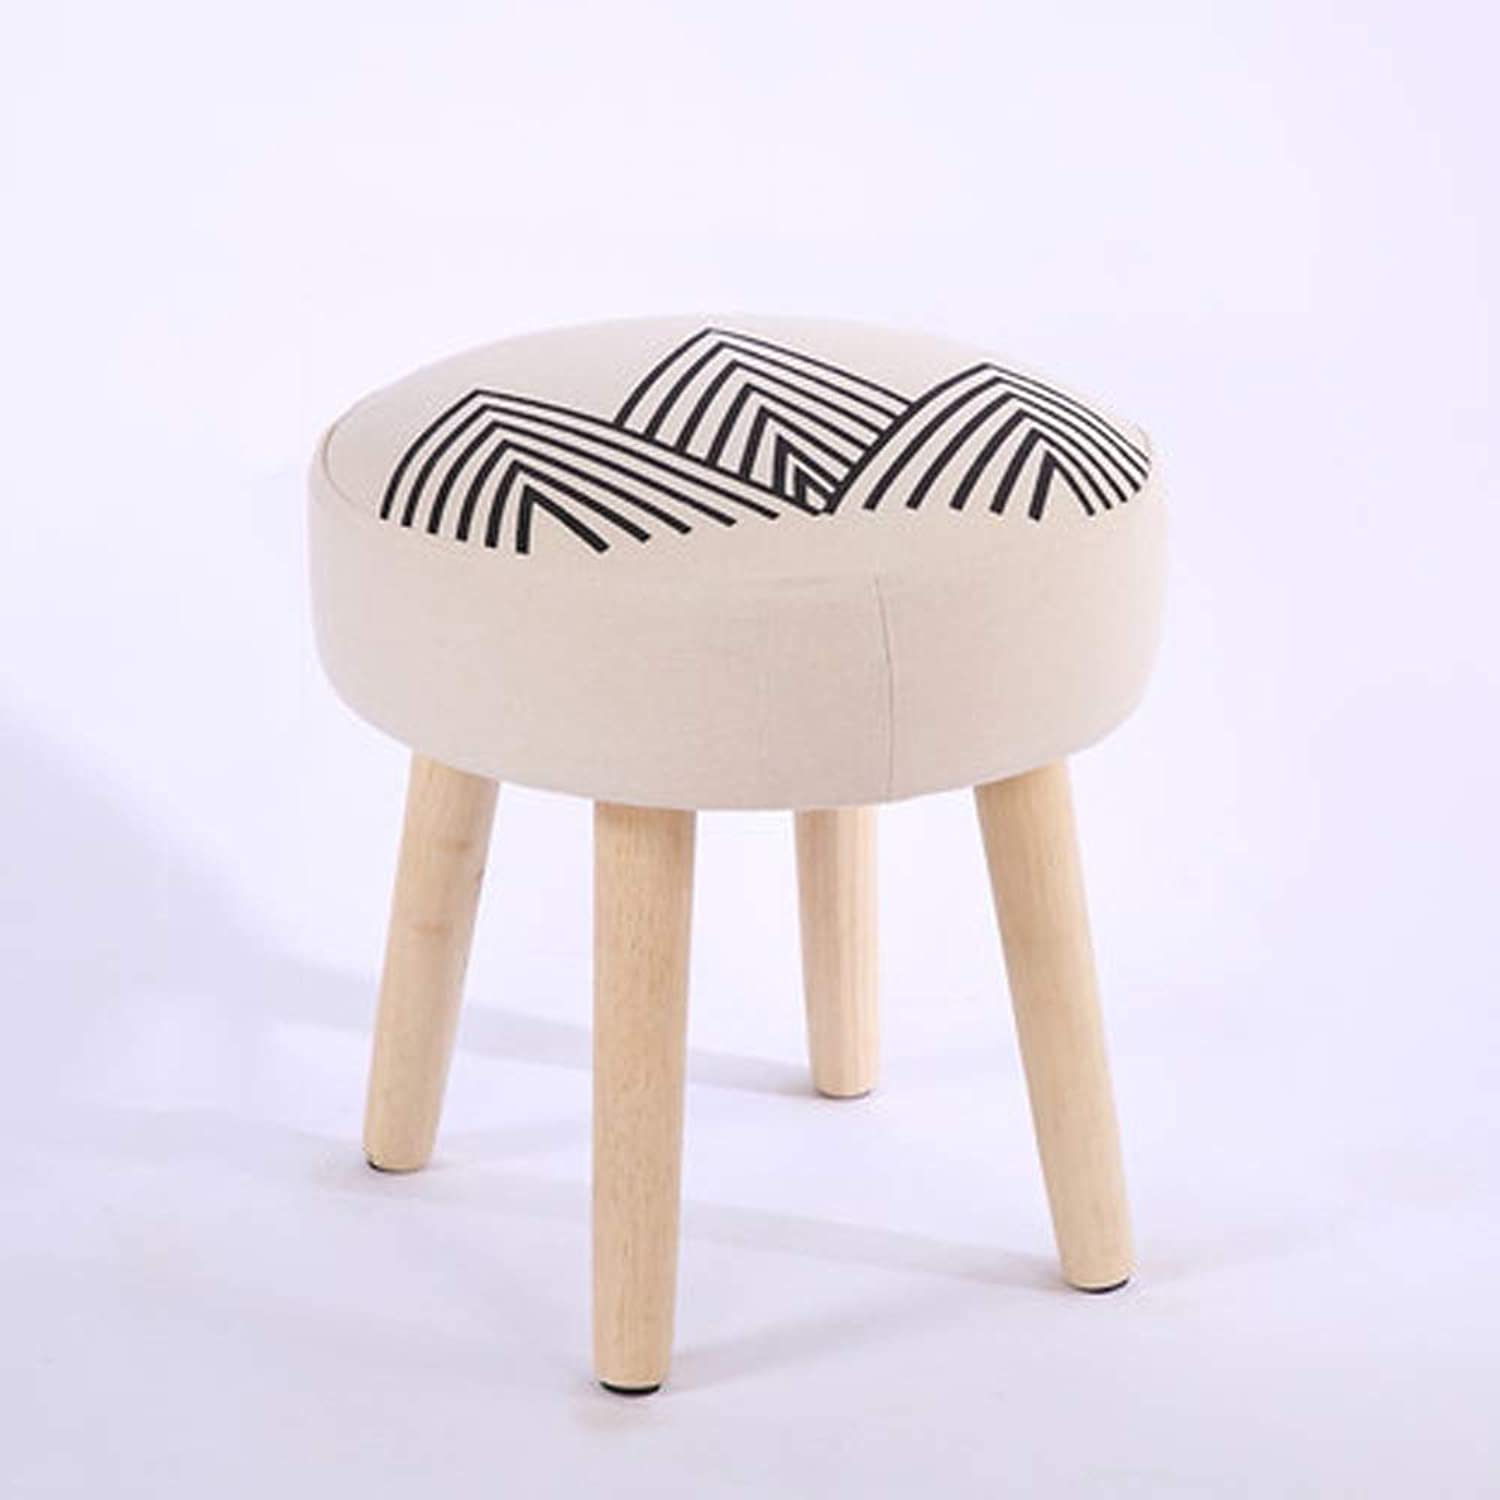 Rubber Wood Stool, Creative Home Round Stool Linen Cloth Wooden Legs,C,Small